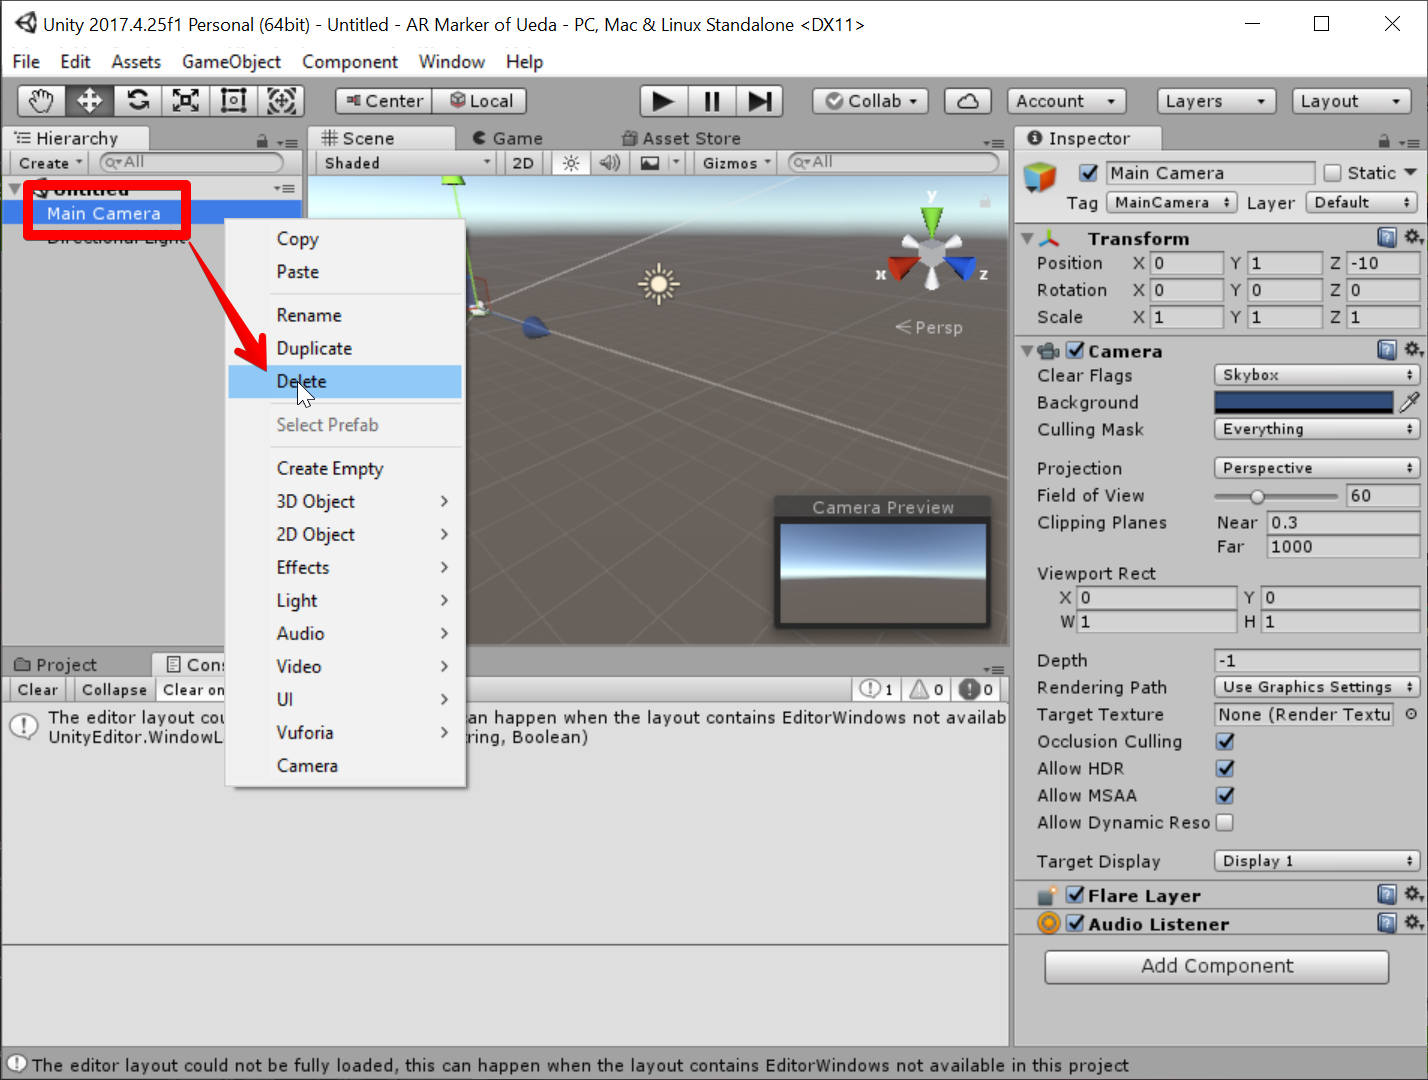 Unity 2017.4.25f1 Personal (64bit) - Untitled - AR Marker of Ueda - PC, Mac & Linux Standalone _DX11_ 2019-07-05 07.36.19.png